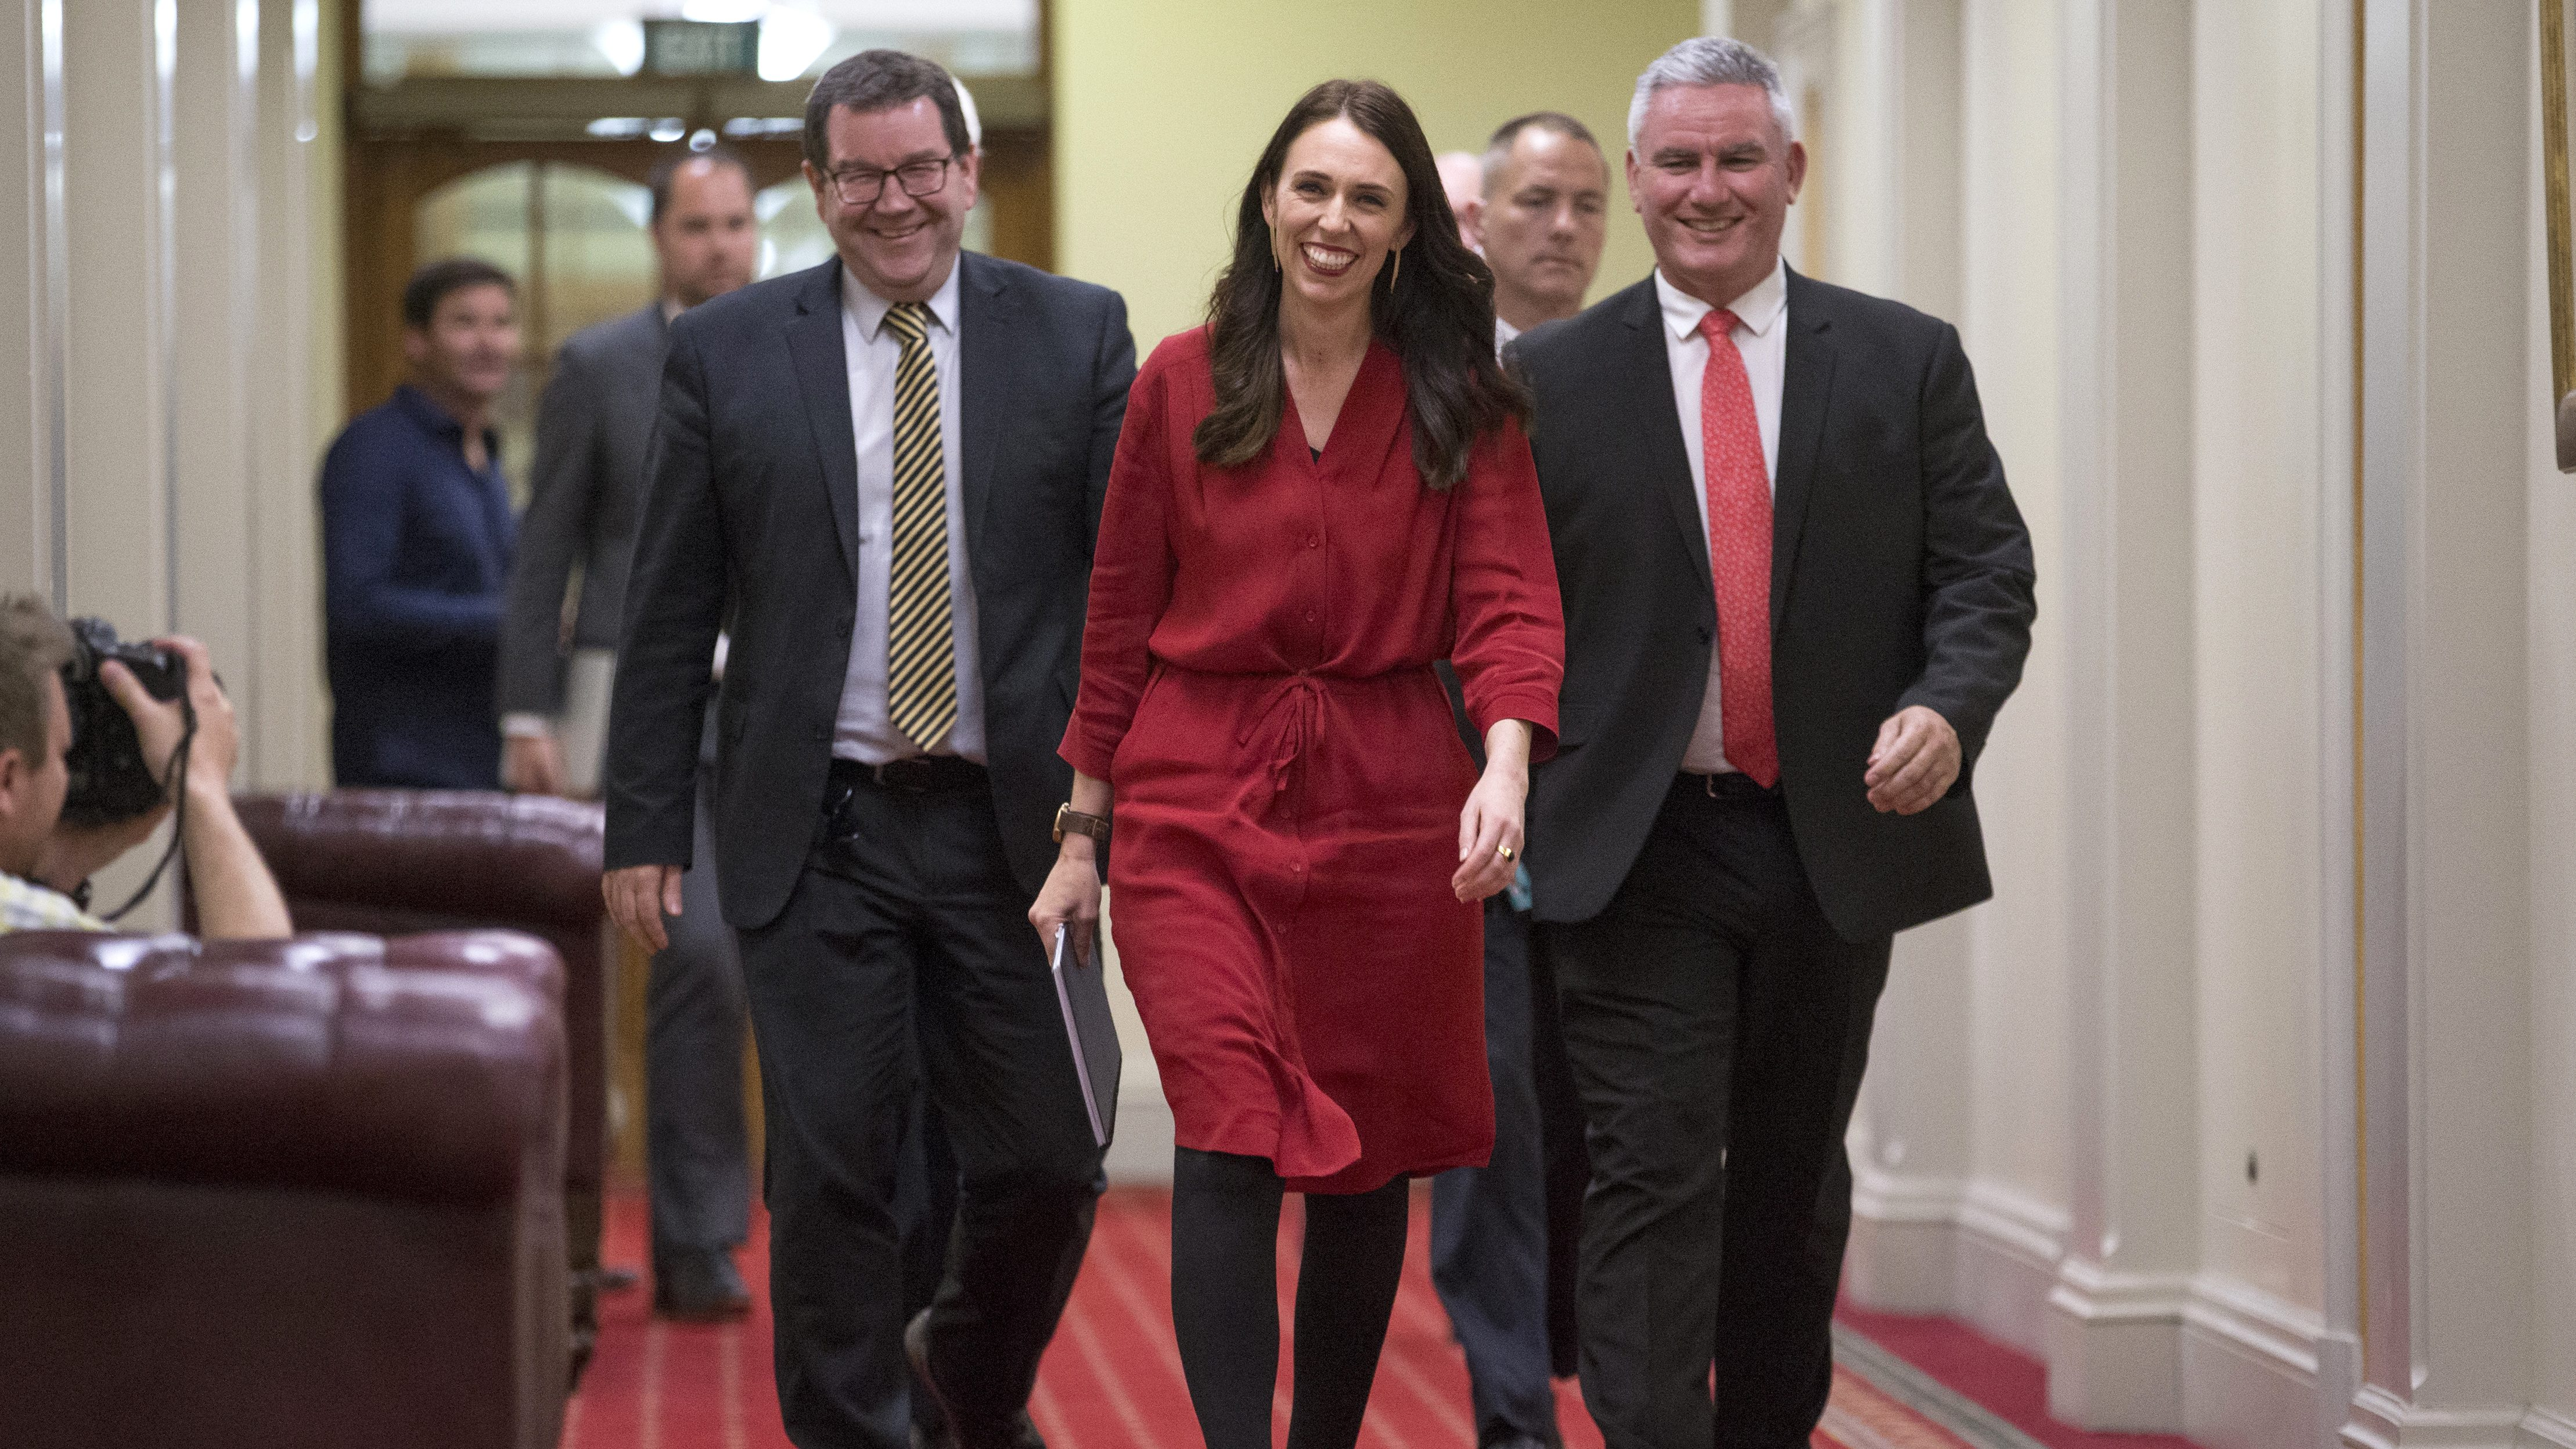 New Zealand Labour Party leader Jacinda Ardern, center, walks with colleagues to a press conference at Parliament in Wellington, New Zealand, Thursday Oct. 19, 2017. Ardern will be New Zealand's next prime minister after a small political party chose to make a deal with liberals following the nation's election nearly a month ago. (Mark Mitchell/New Zealand Herald via AP)